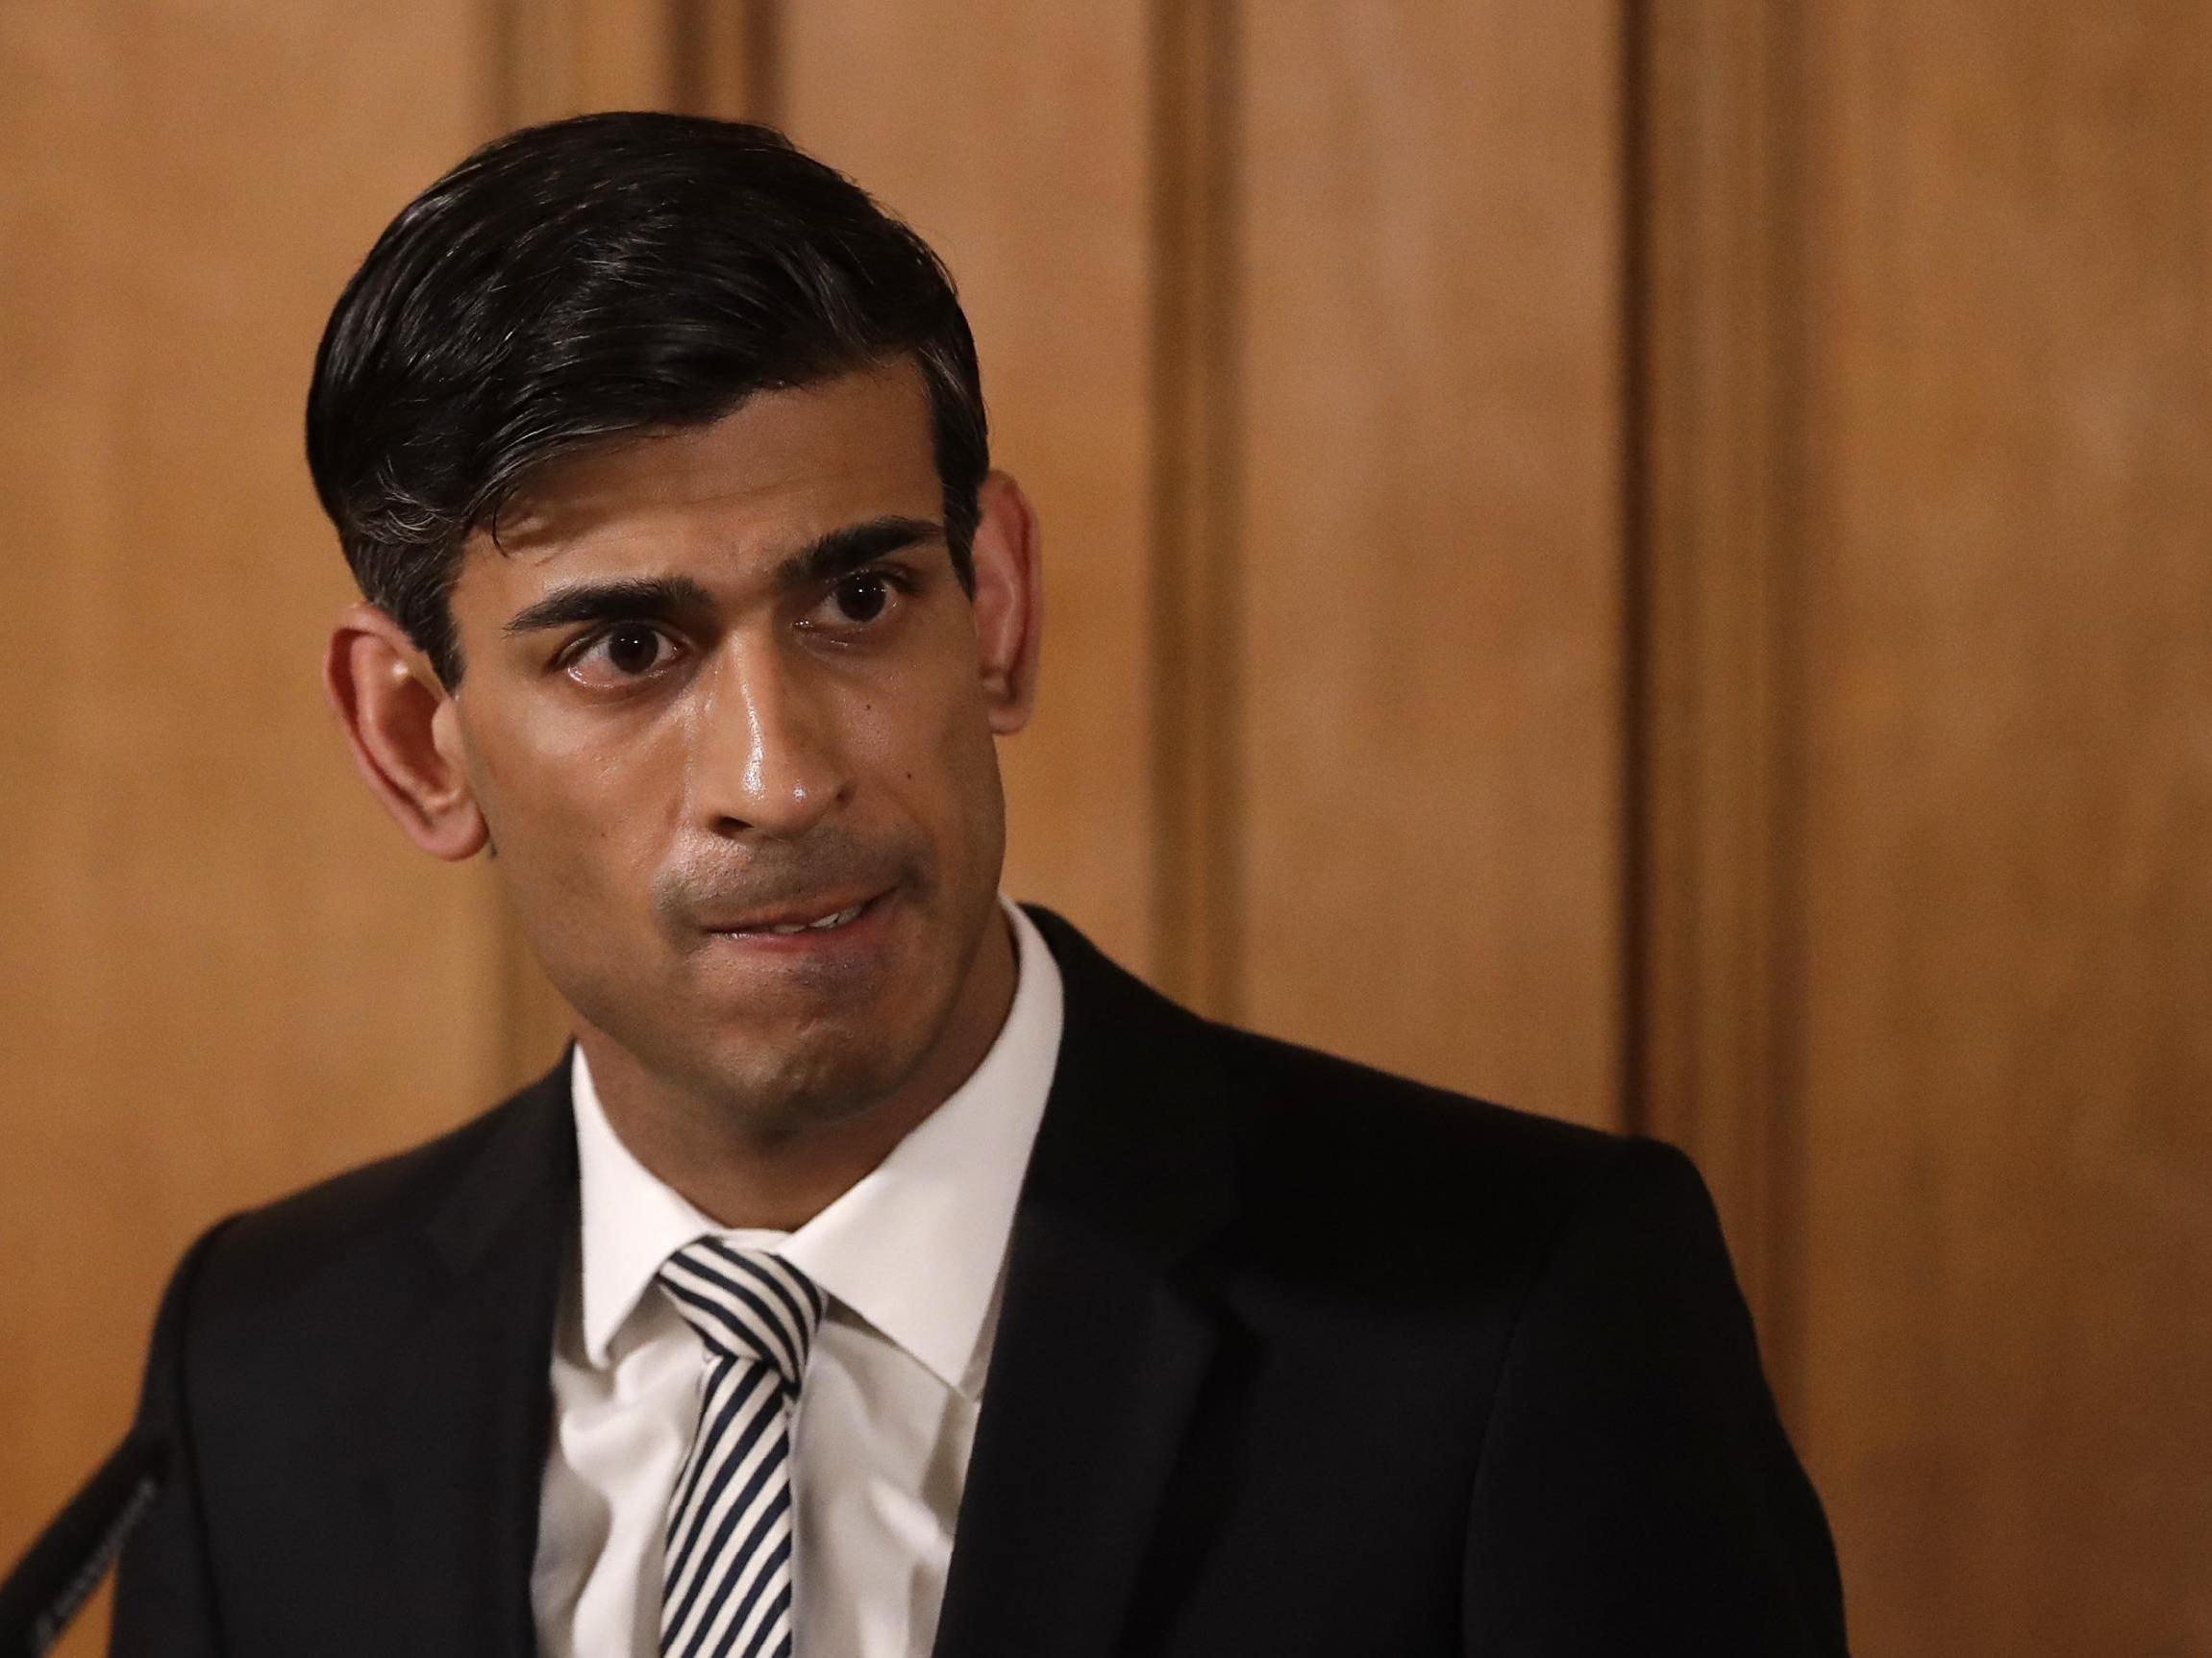 Coronavirus: Budget cancelled as Rishi Sunak prepares to unveil more support for business - The Independent